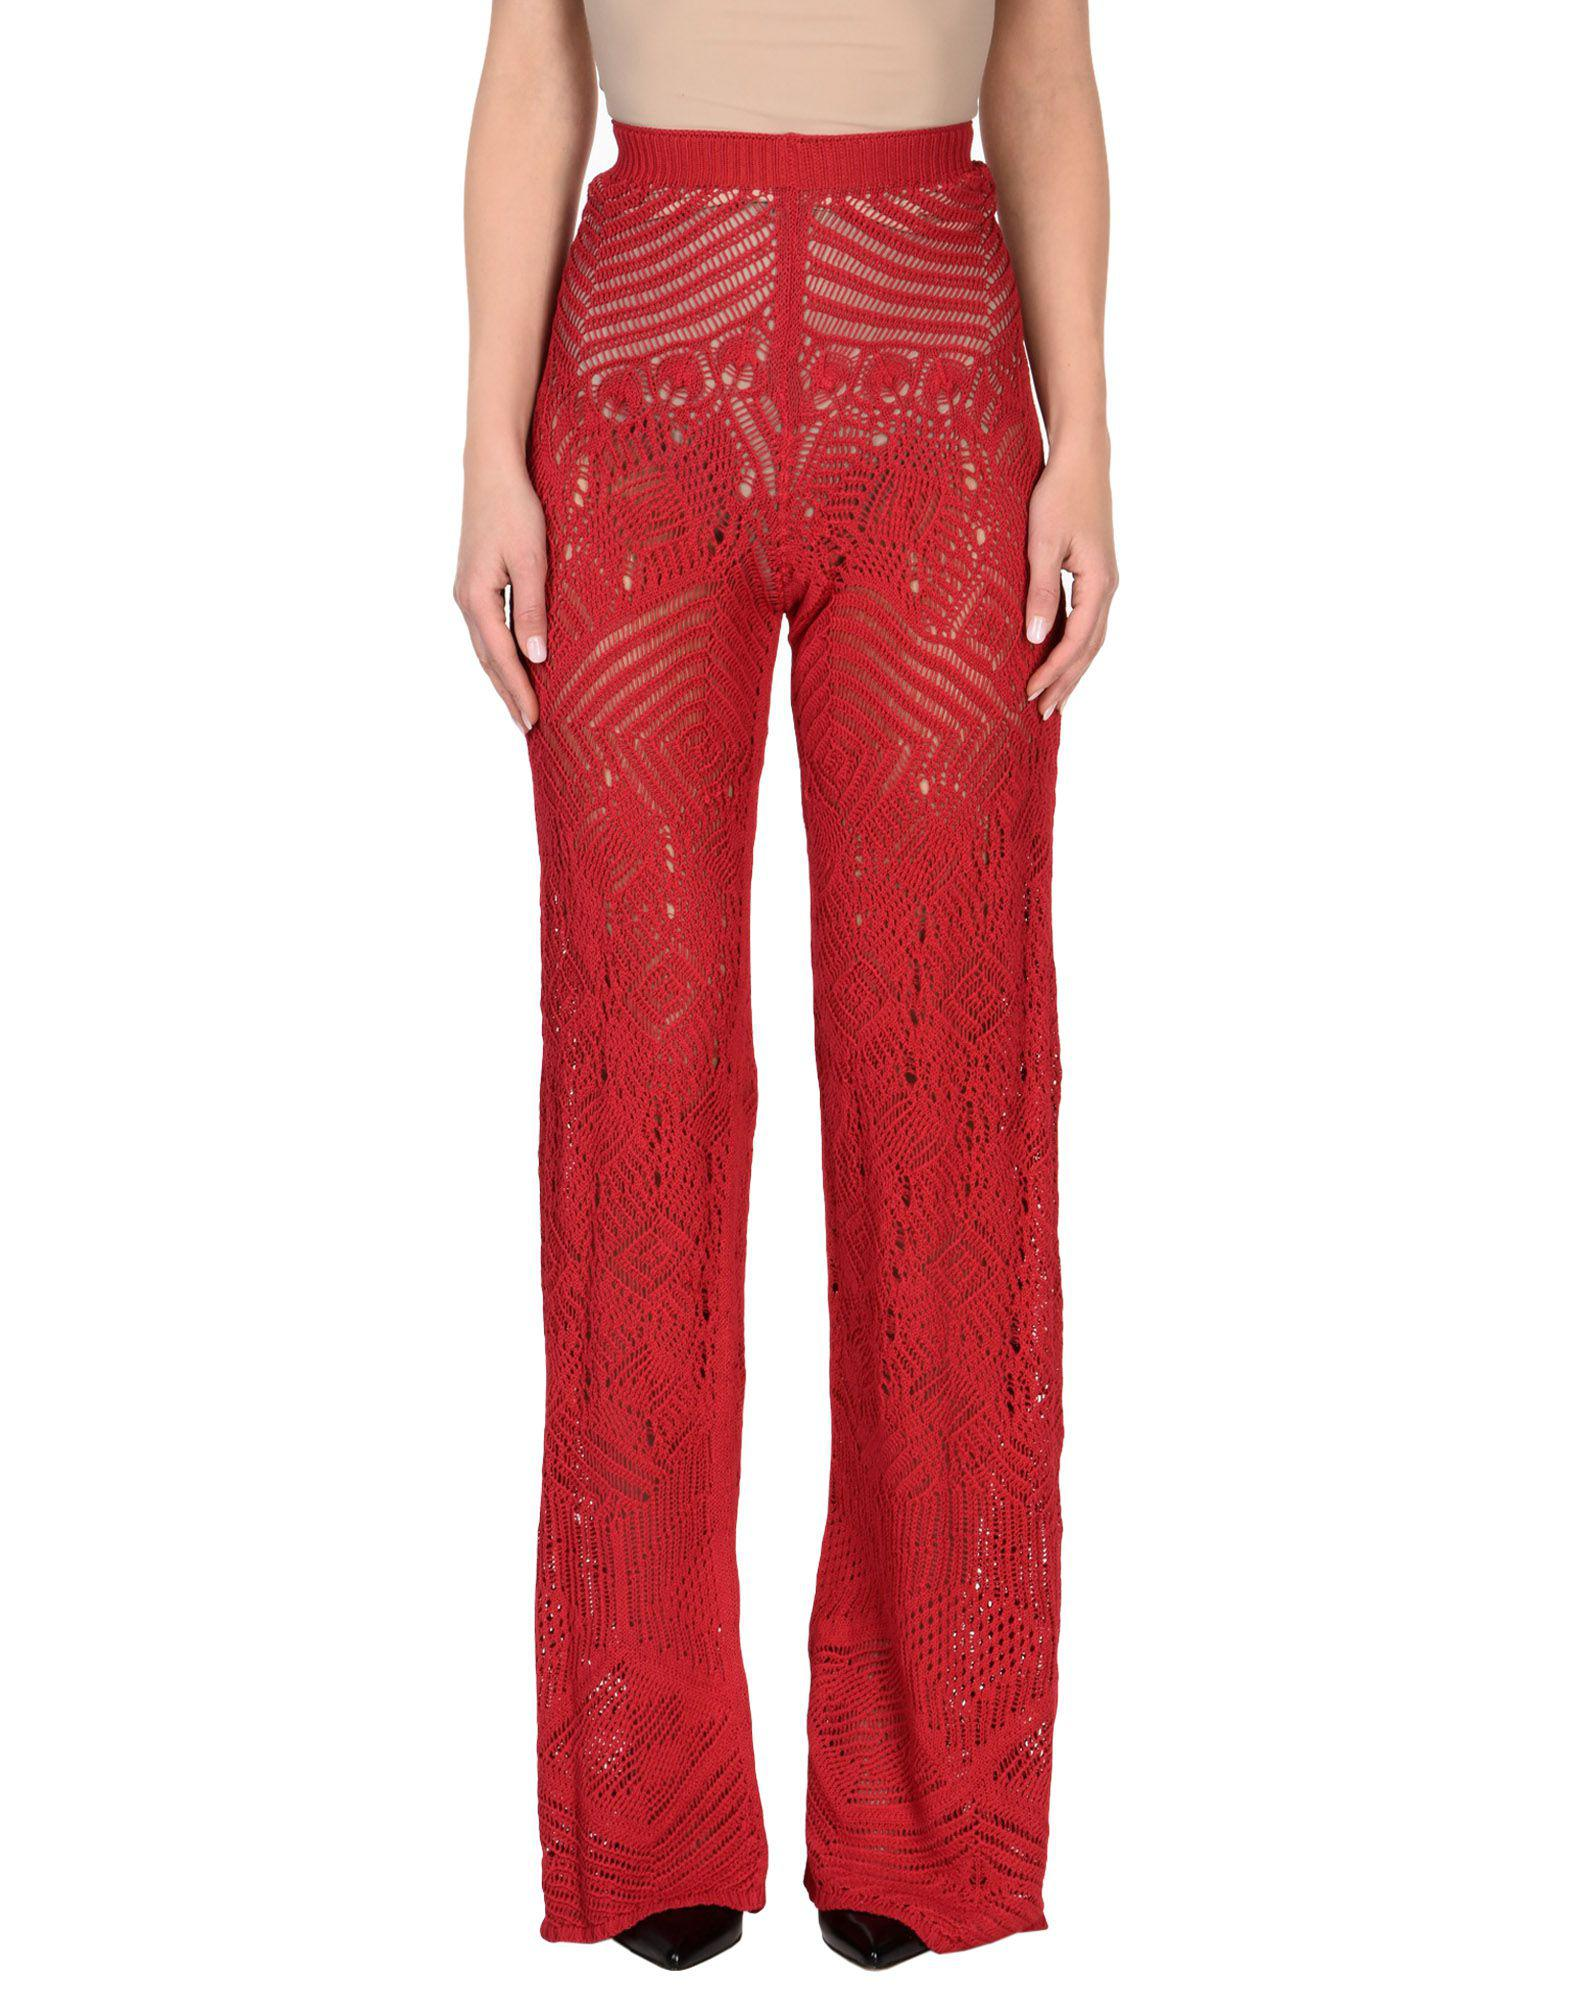 TROUSERS - Casual trousers La Perla Nicekicks Cheap Online Original Cheap Price Clearance Low Cost Outlet New Many Colors AUrhpNANR